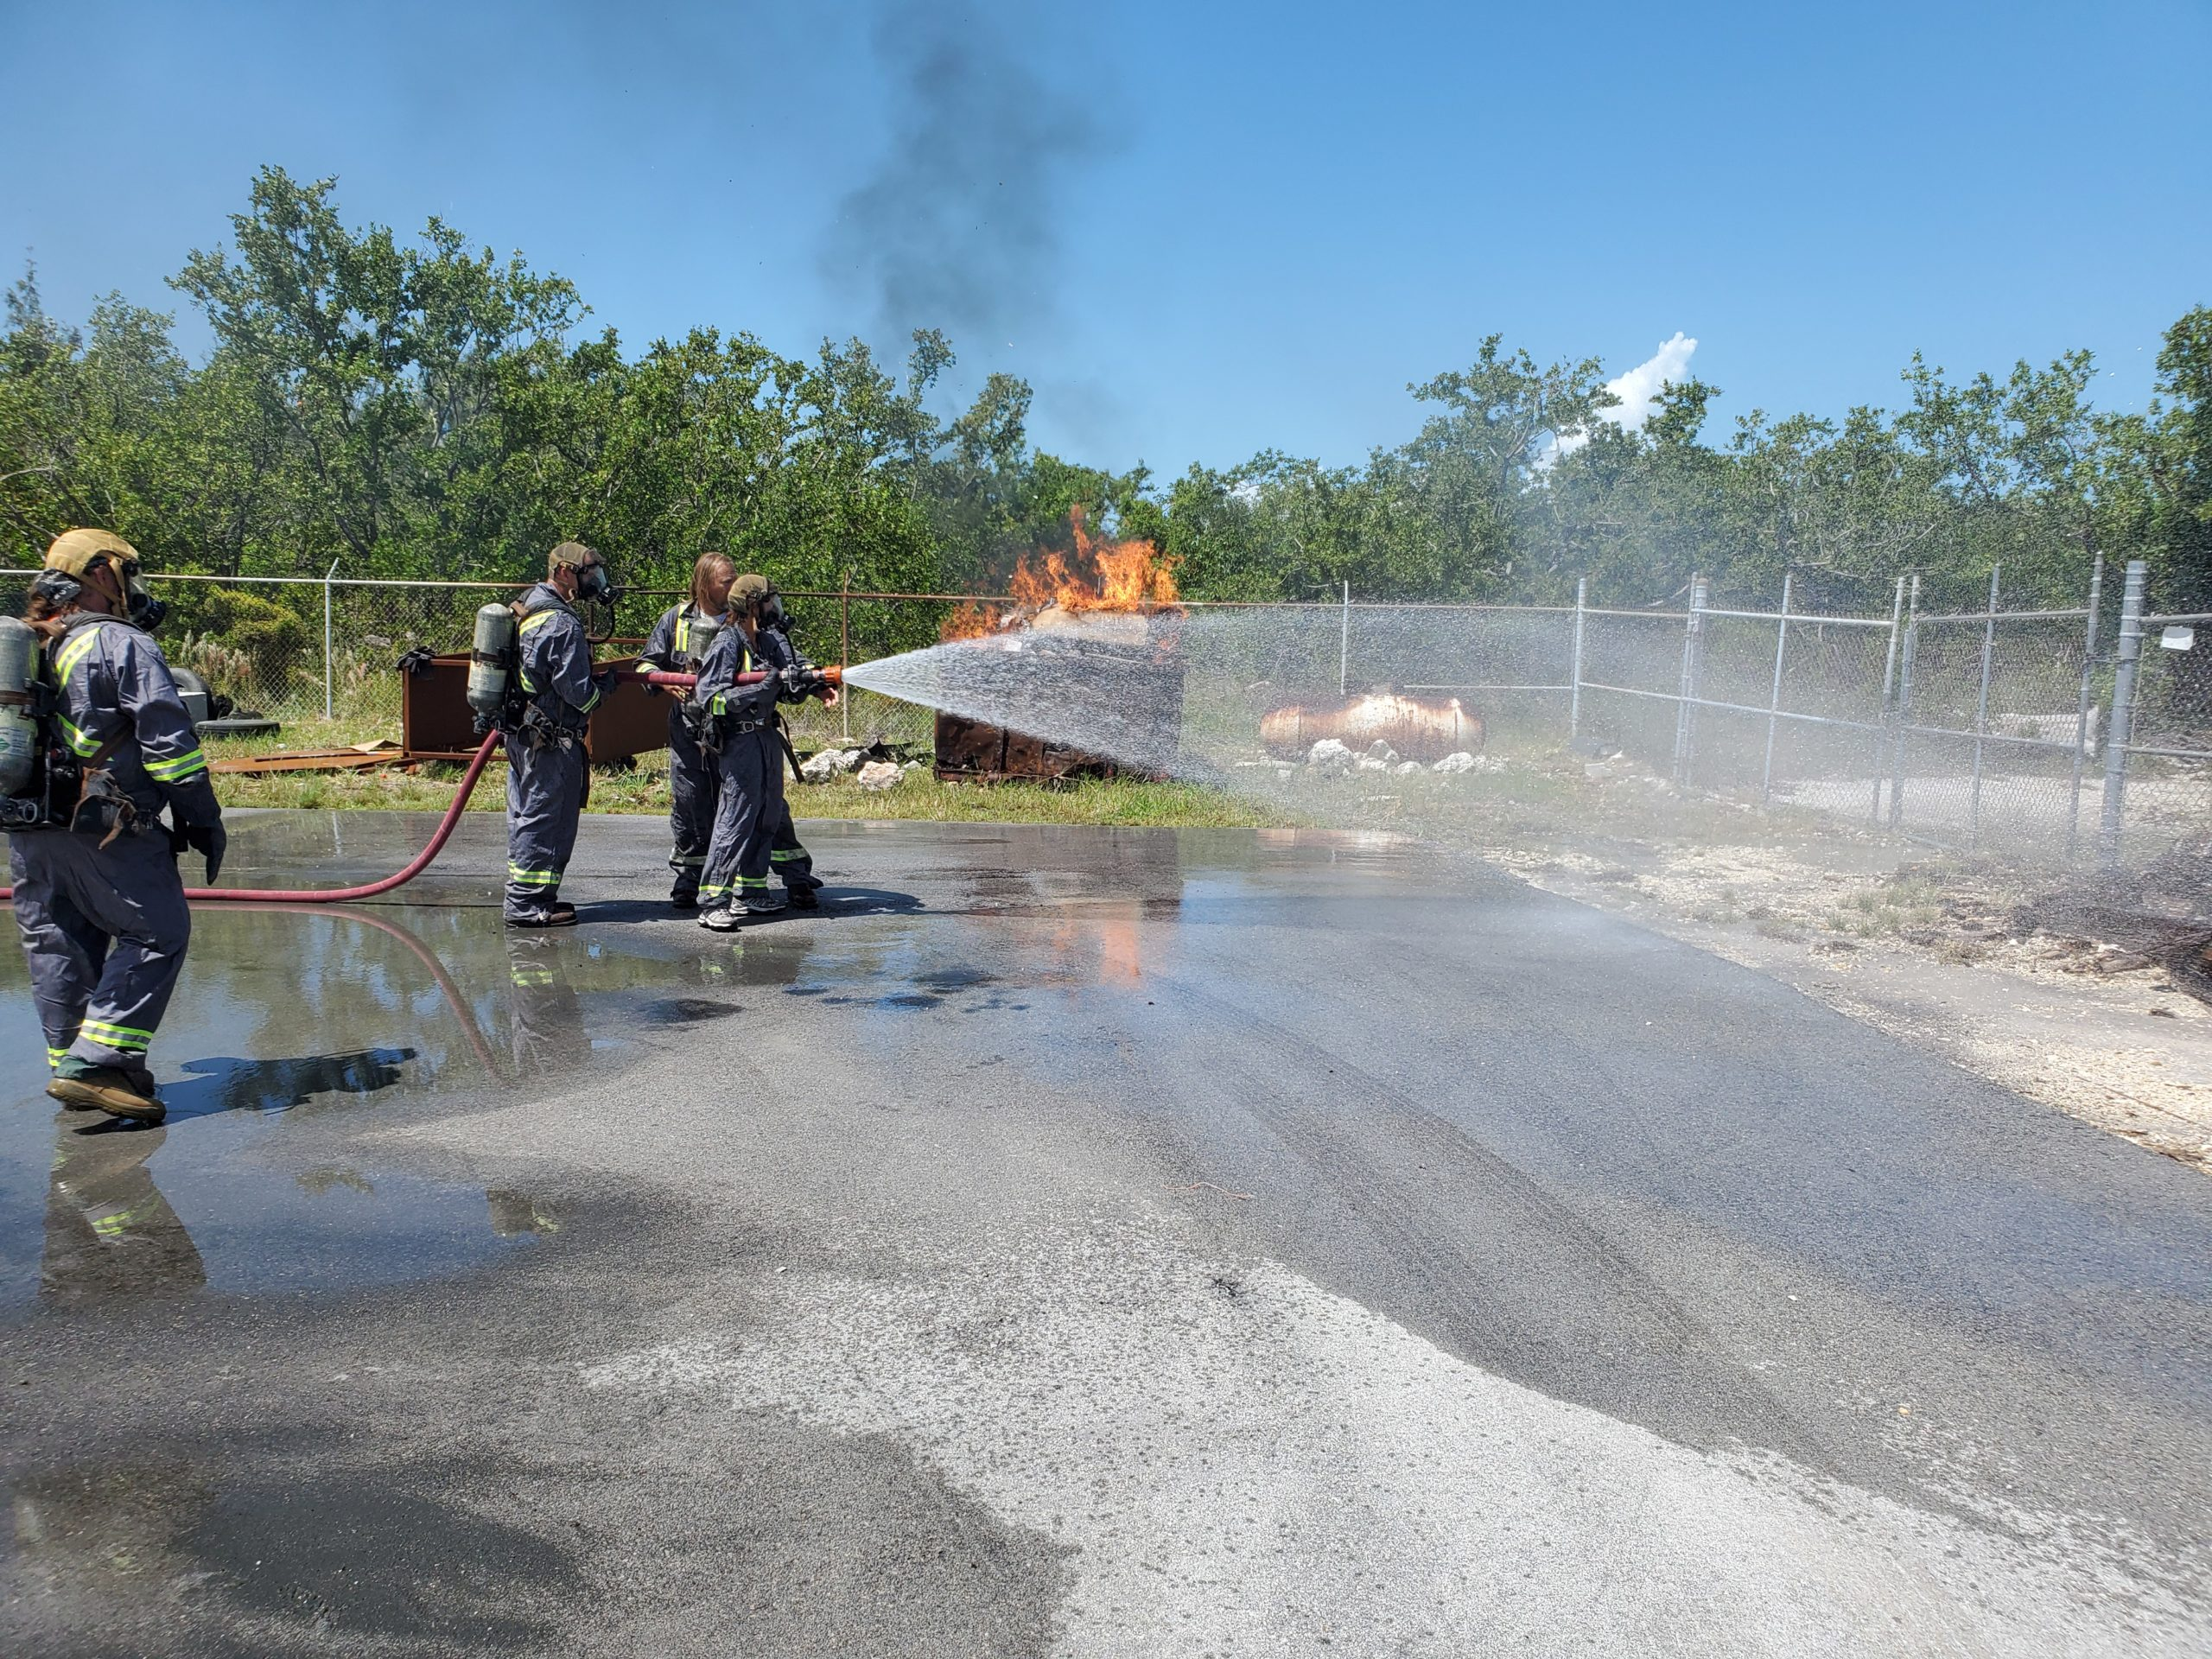 STCW Basic Safety Training (BST) - 5 day and blended - Key West